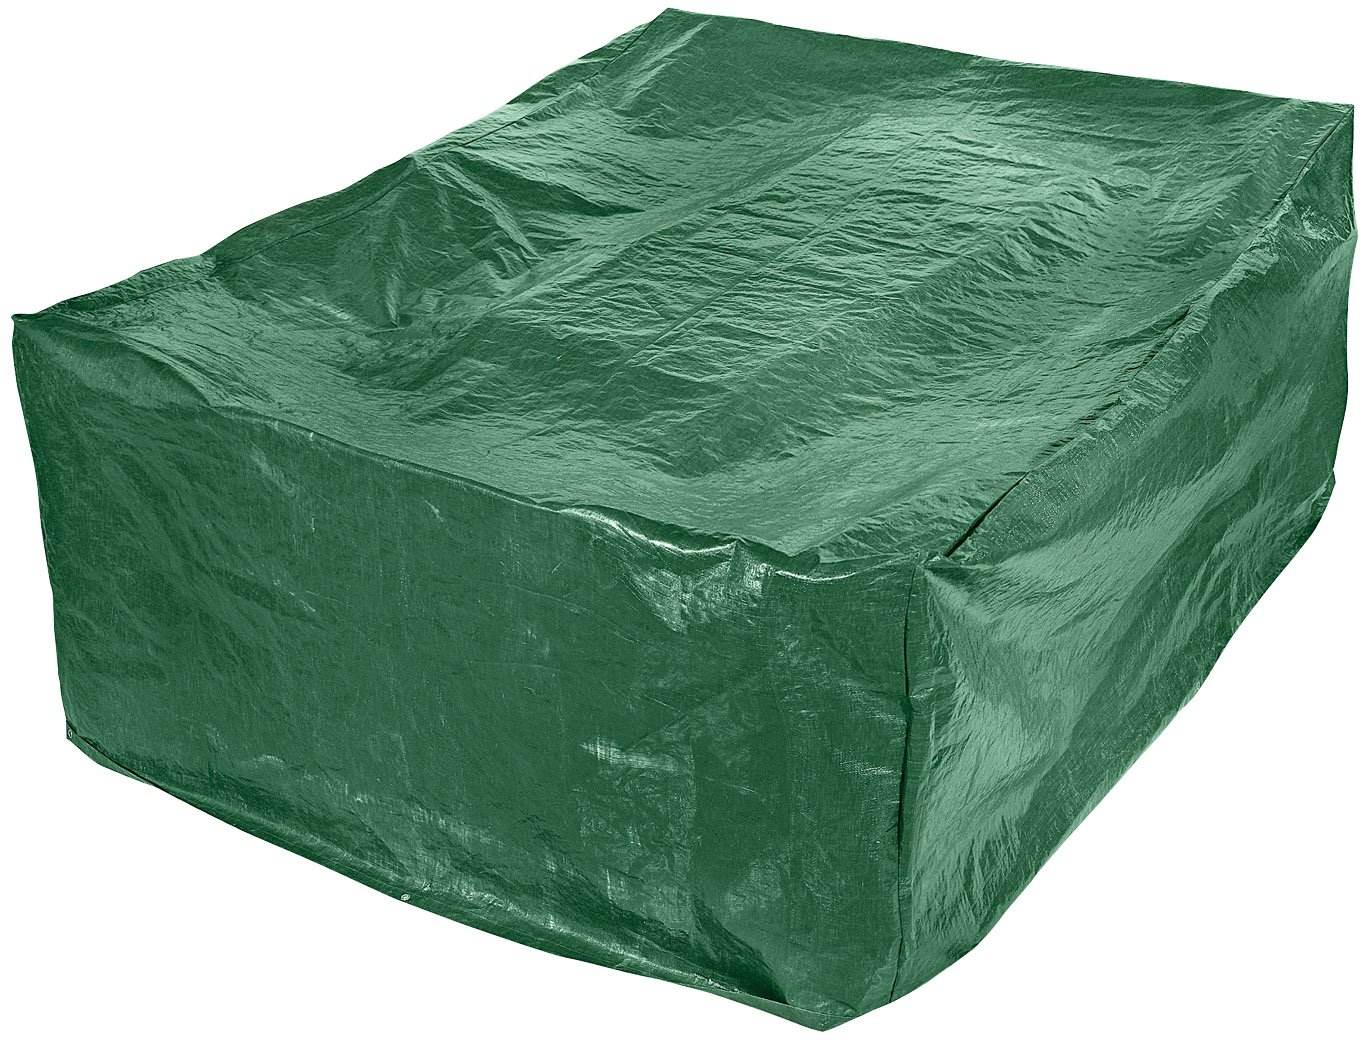 large garden furniture cover. Draper 2780 Mm X 2040 1060 Large Patio Set Cover: Amazon.co.uk: Garden \u0026 Outdoors Furniture Cover